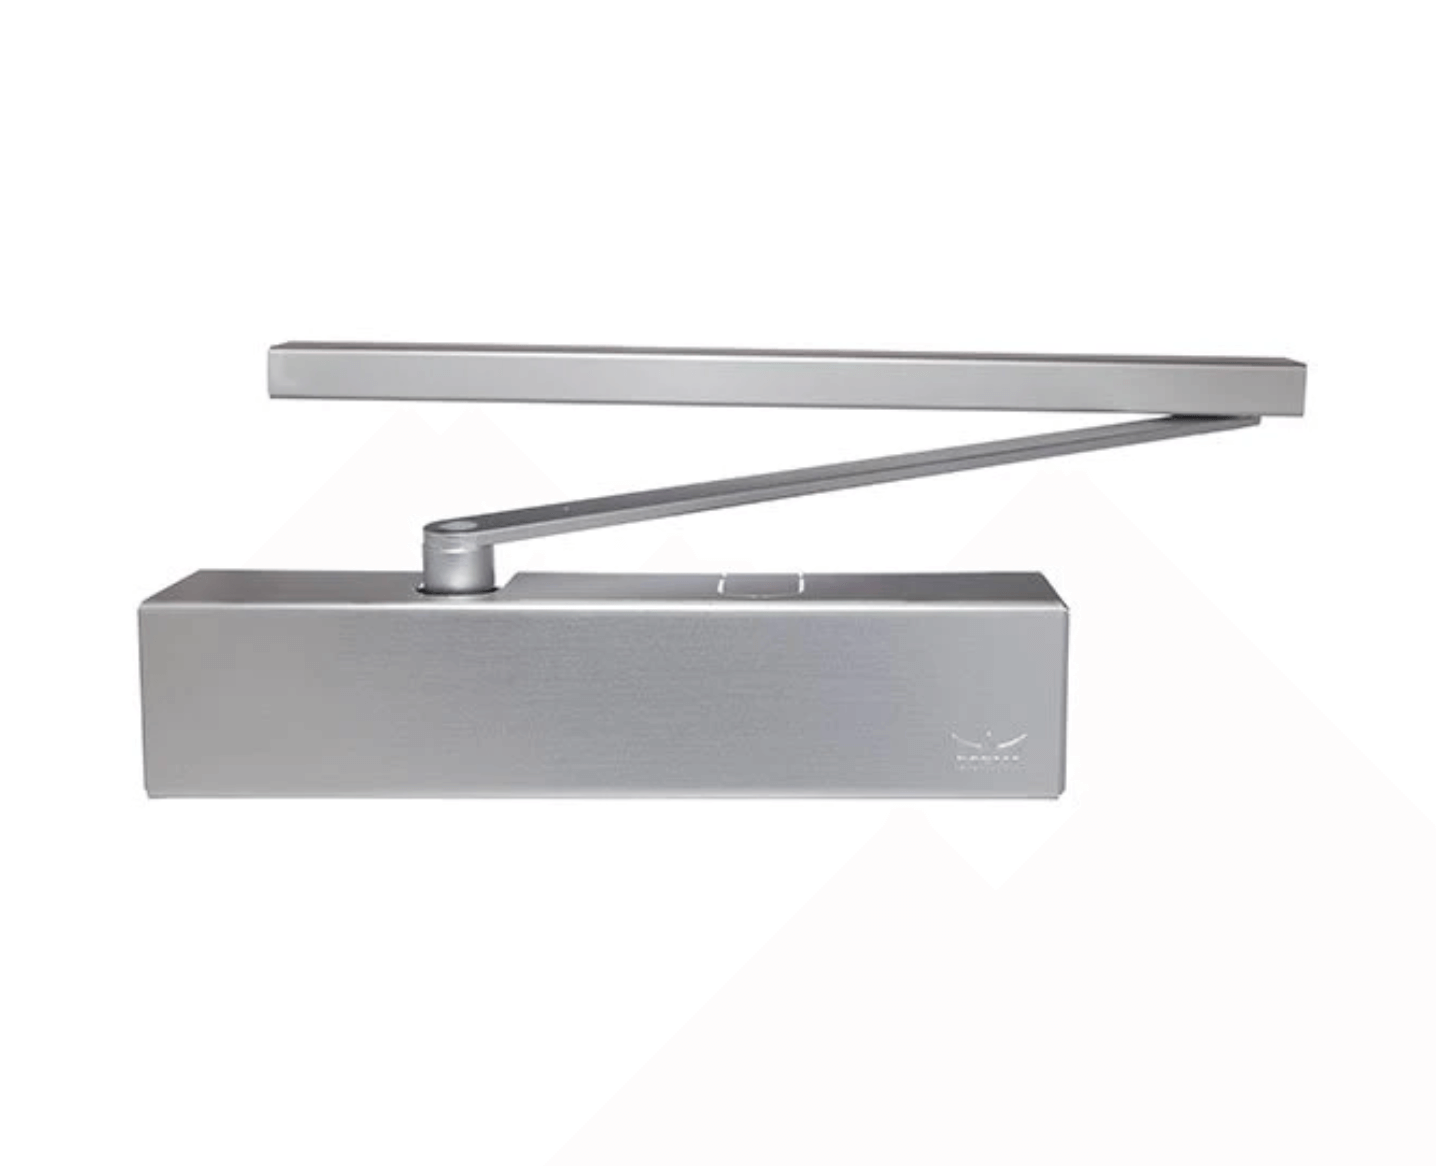 Dorma TS93 Slide Arm Door Closer with Adjustable Power and Back Check for Pull Side.